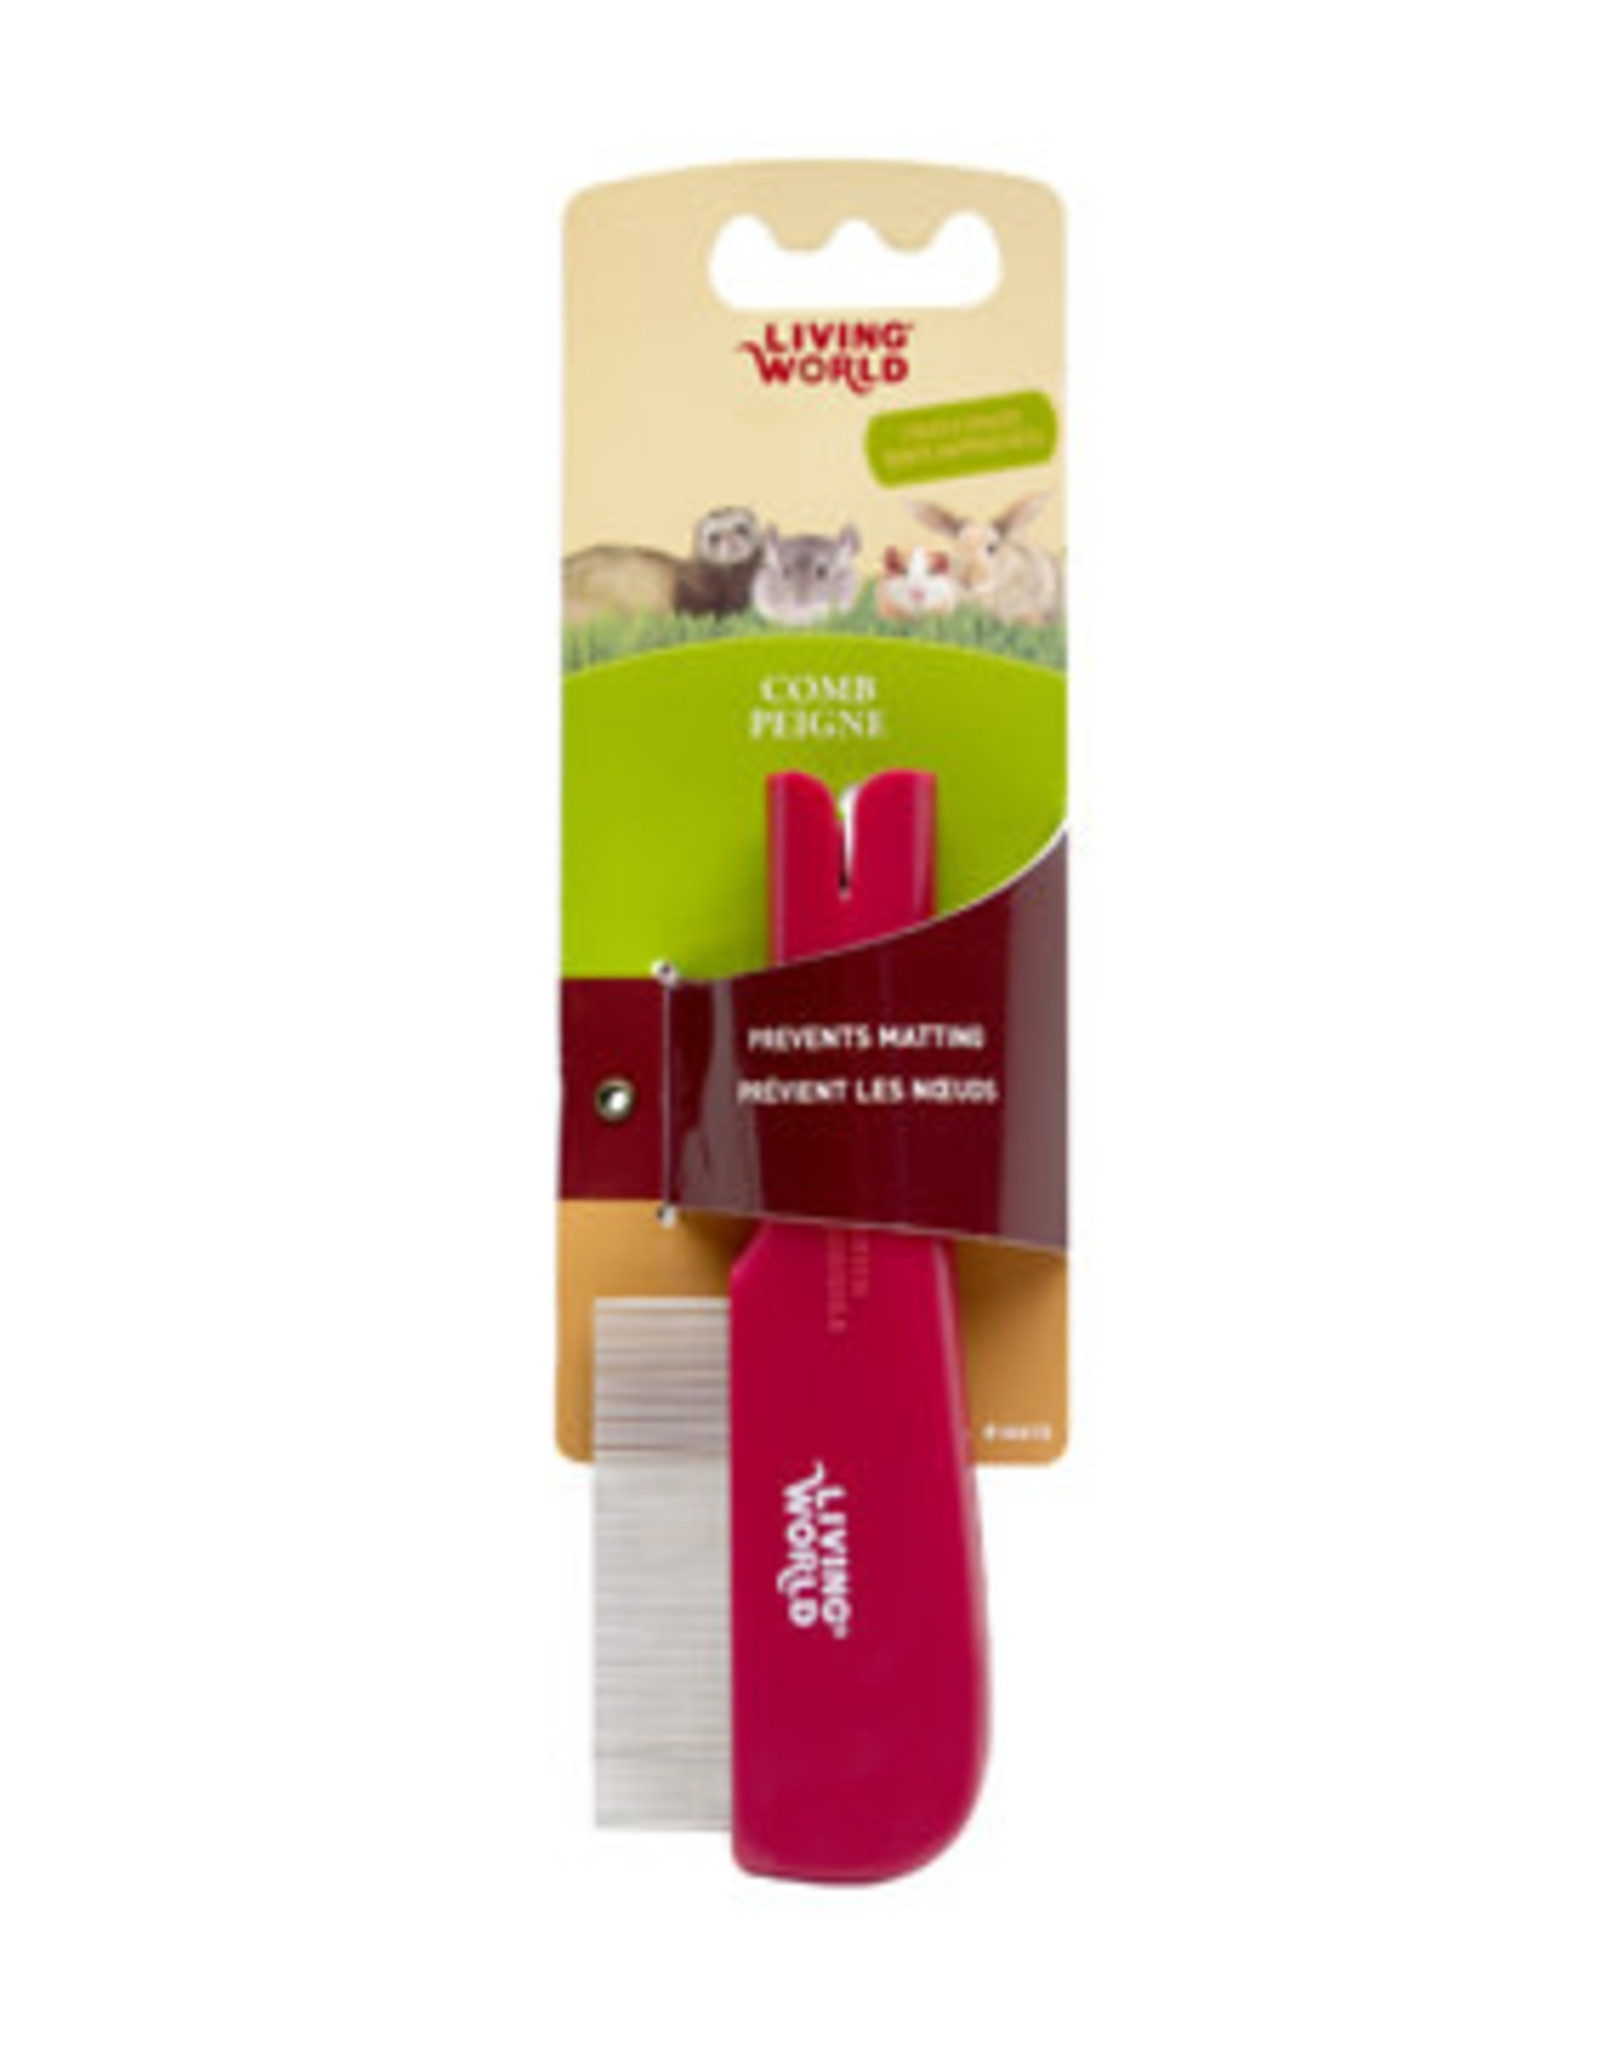 LIVING WORLD Living World Small Animal Combo Flea & Face Comb